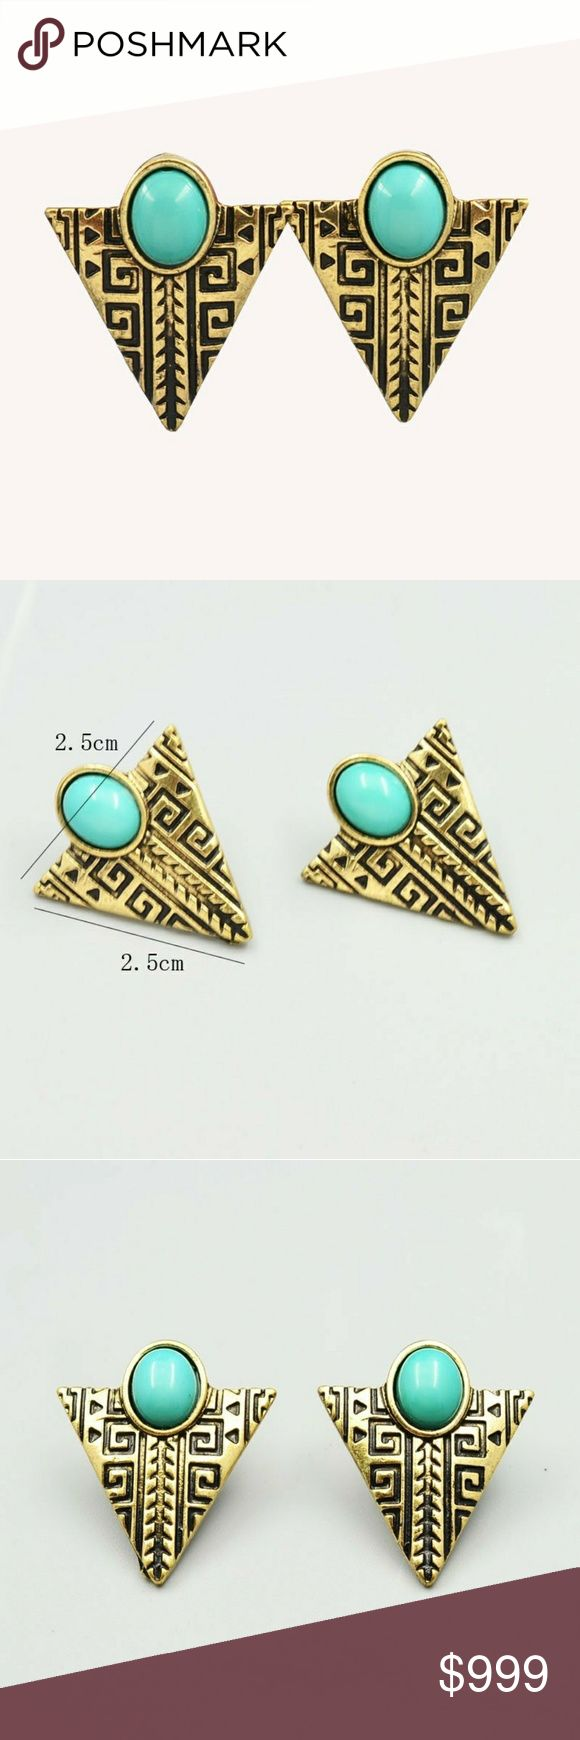 "COMING SOON!! Vintage Gold Boho Arrow Earrings Coming Soon!! (Price available upon arrival).  Brand new in original packaging.  Vintage appeal gold filled arrow triangle shape dangle drop earrings.  Material: Antique gold plated metal, sky blue stone & resin.  Tribal boho chic jewels that are lightweight, w/ push-backs.  ""Like"" to be notified of arrival!  Jewelry Earrings"